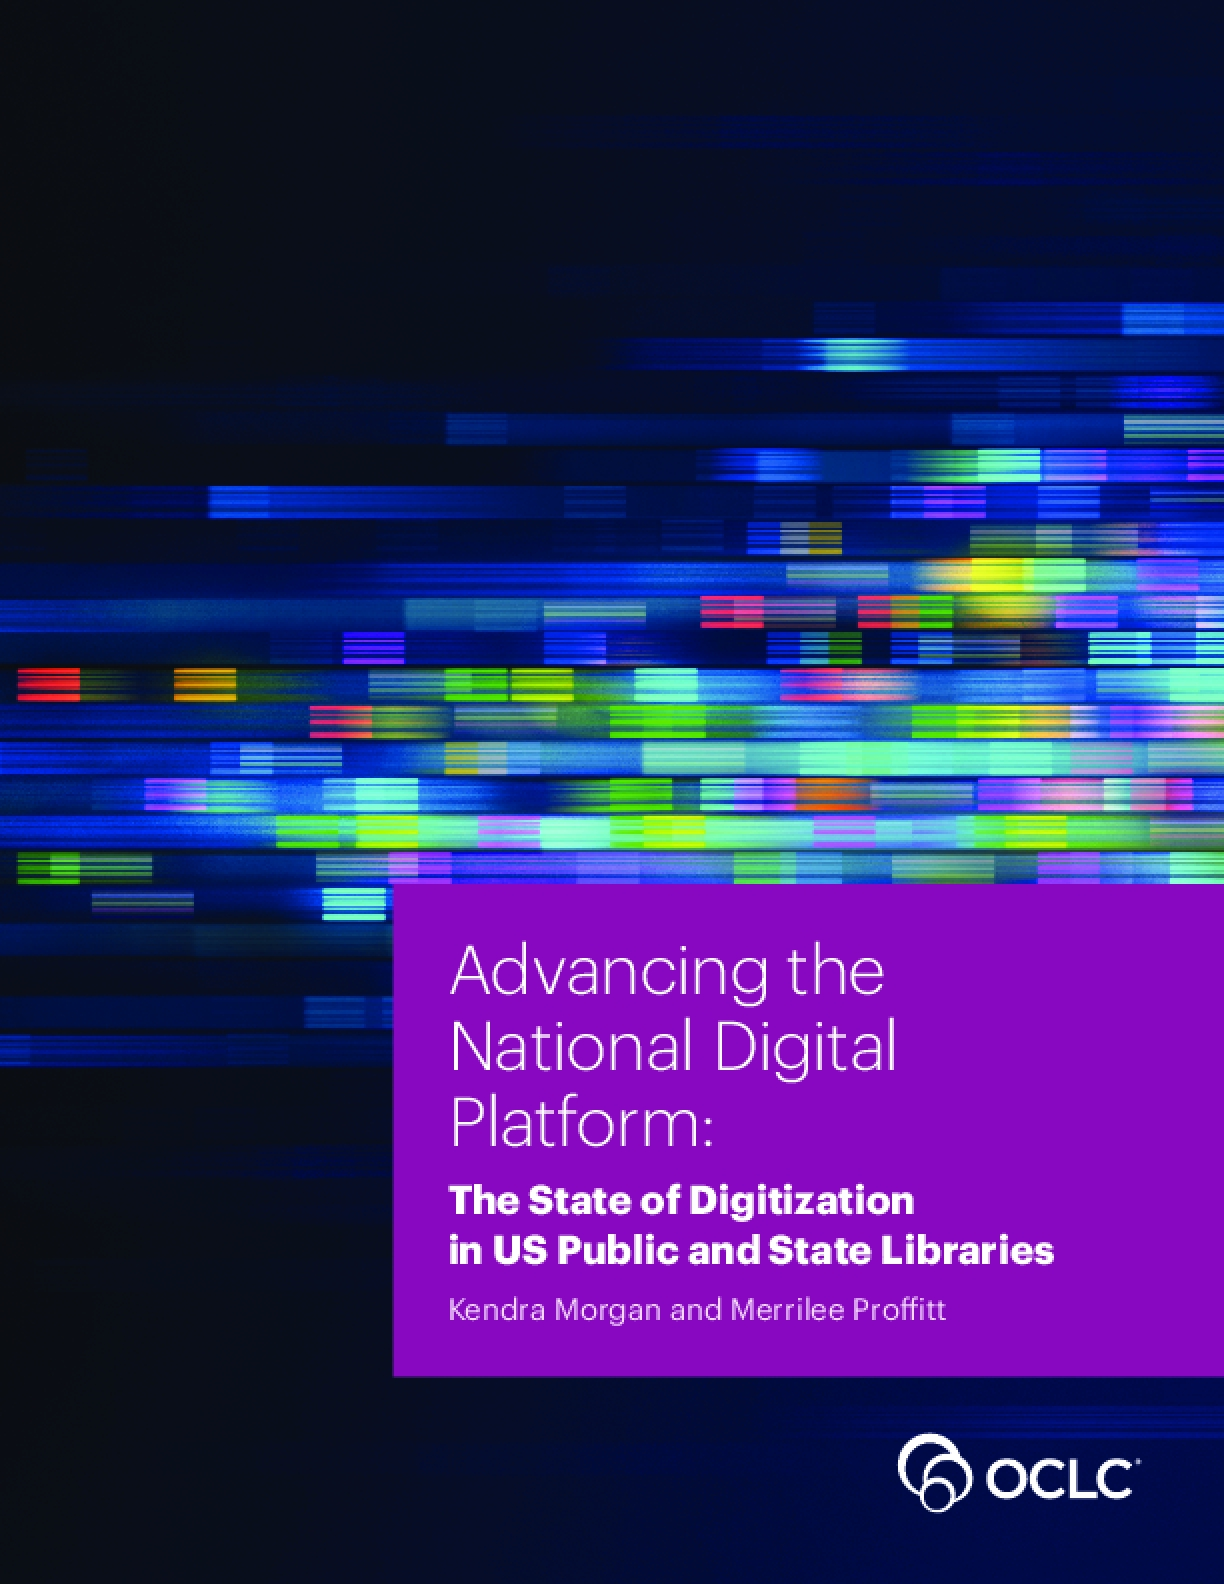 Advancing the National Digital Platform: The State of Digitization in US Public and State Libraries